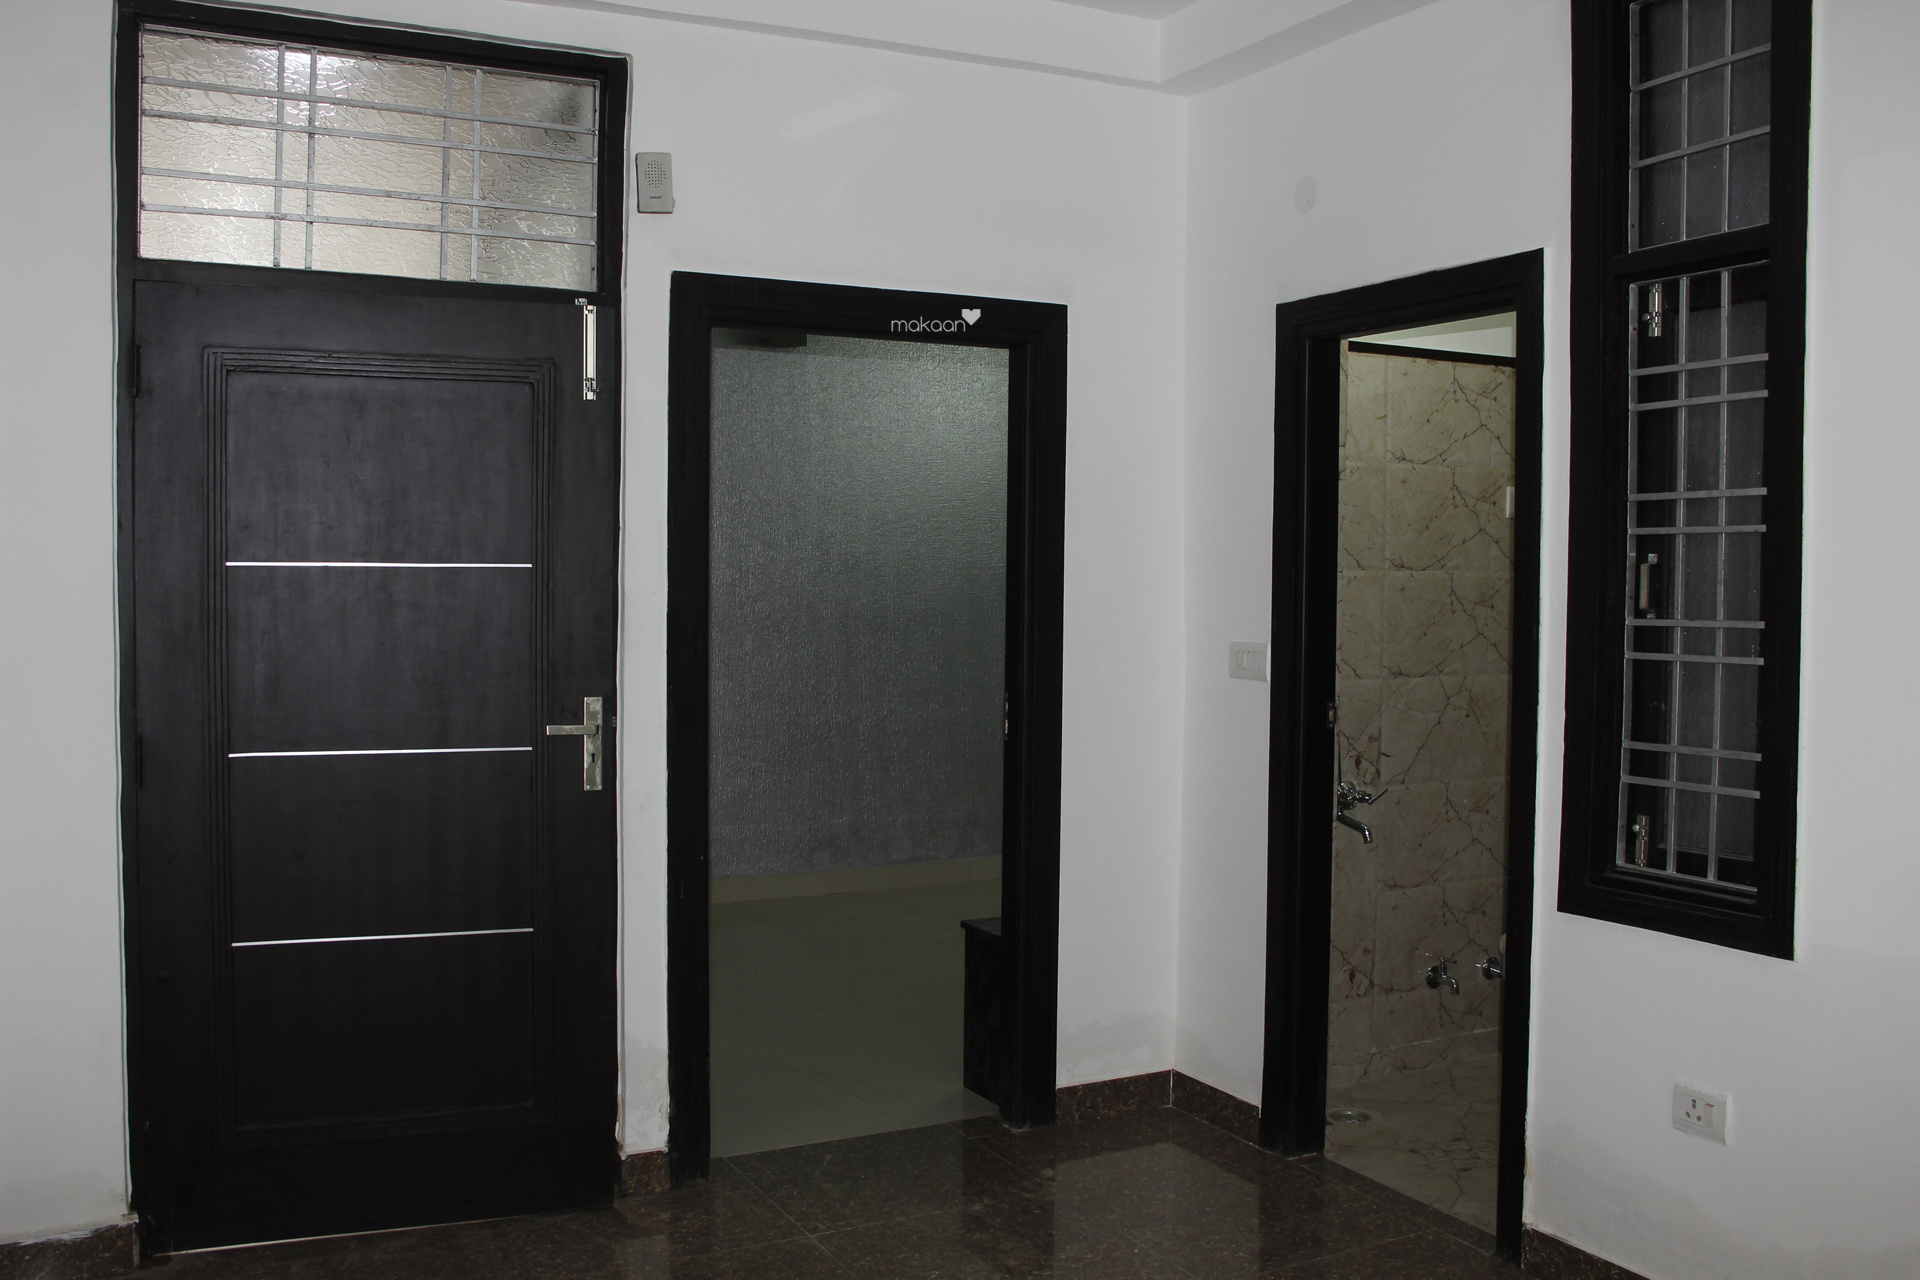 660 sq ft 1BHK +2T Property By Demera Homz In Project, Indra Puram